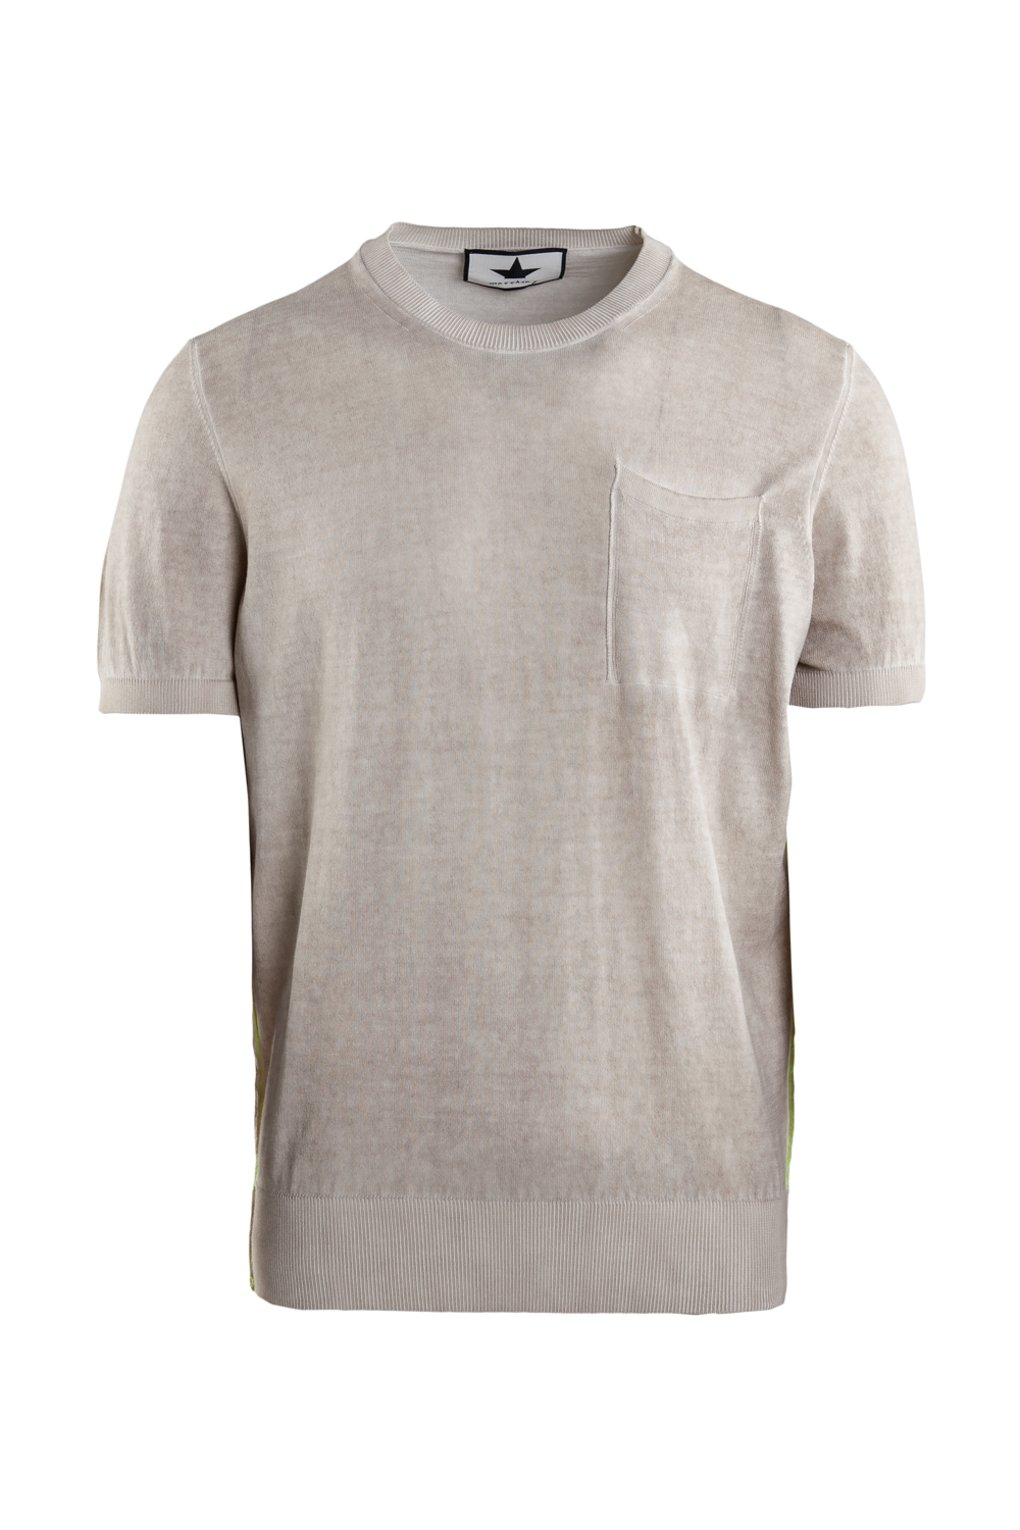 Cotton sweater short sleeve